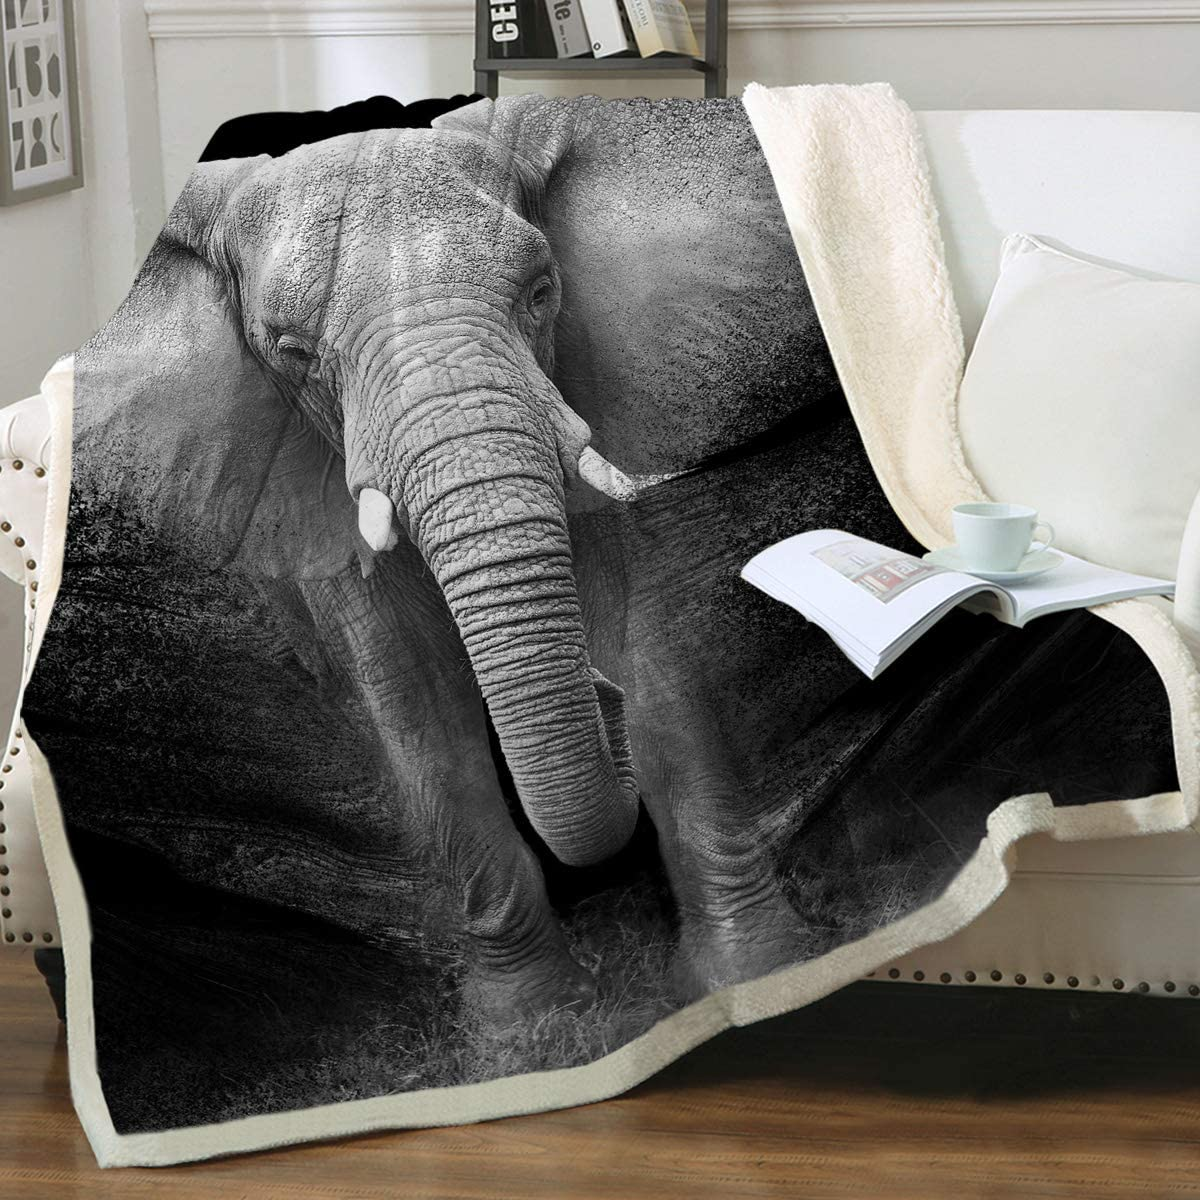 Sleepwish Elephant Blanket Adult Super Soft Cozy Sherpa Fleece Throw Blanket Black White 3d African Elephant Walking Blanket For Men Boys Throw 50 X 60 Home Kitchen